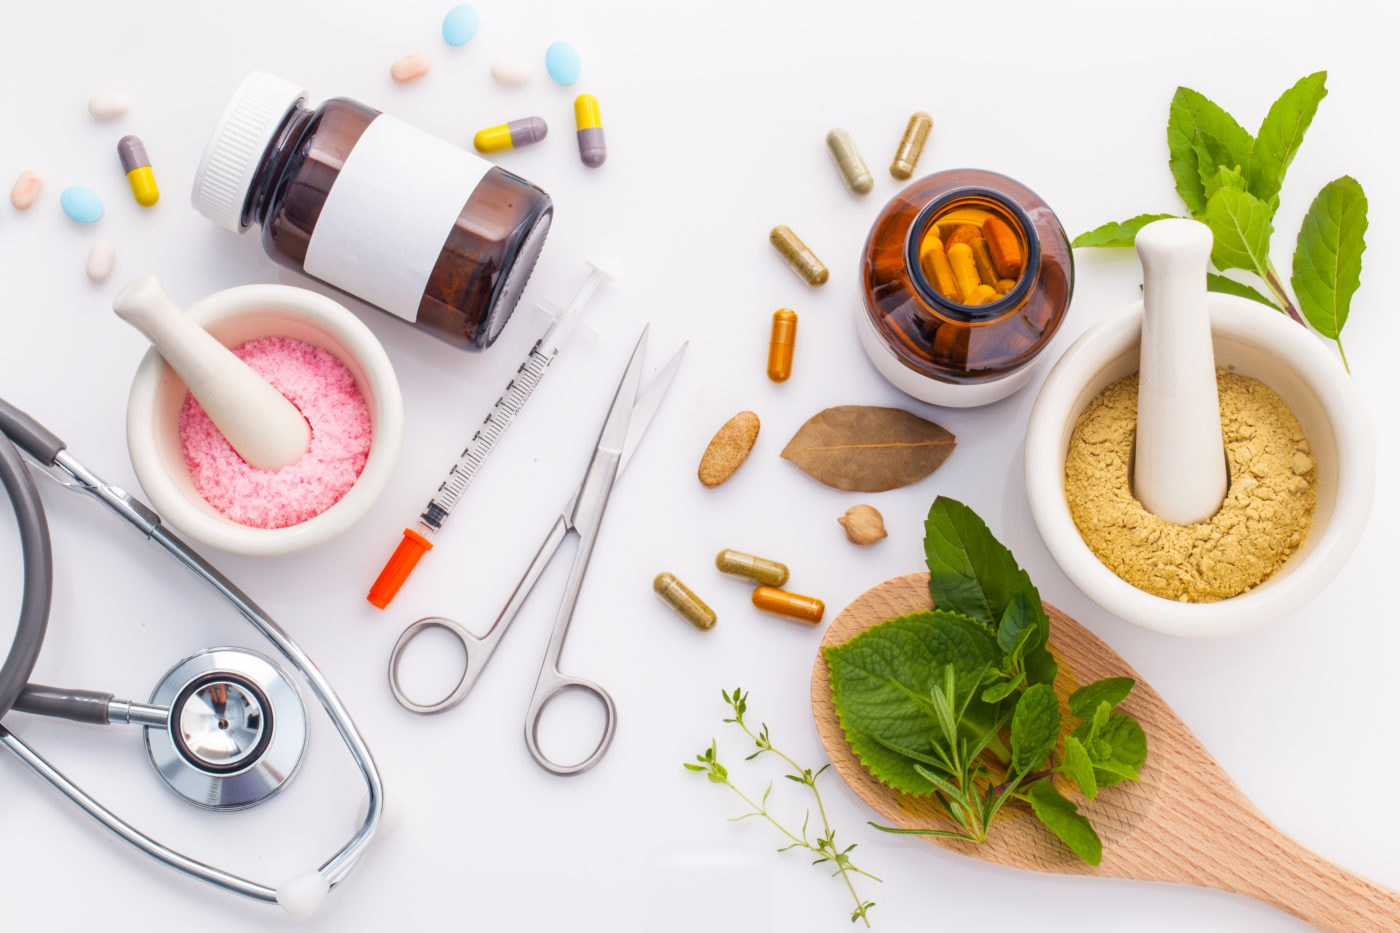 Integrative Medicine - The union of Conventional Western Medicine and Complementary Medicine | https://physiologicnyc.com/integrative-medicine-wellness/